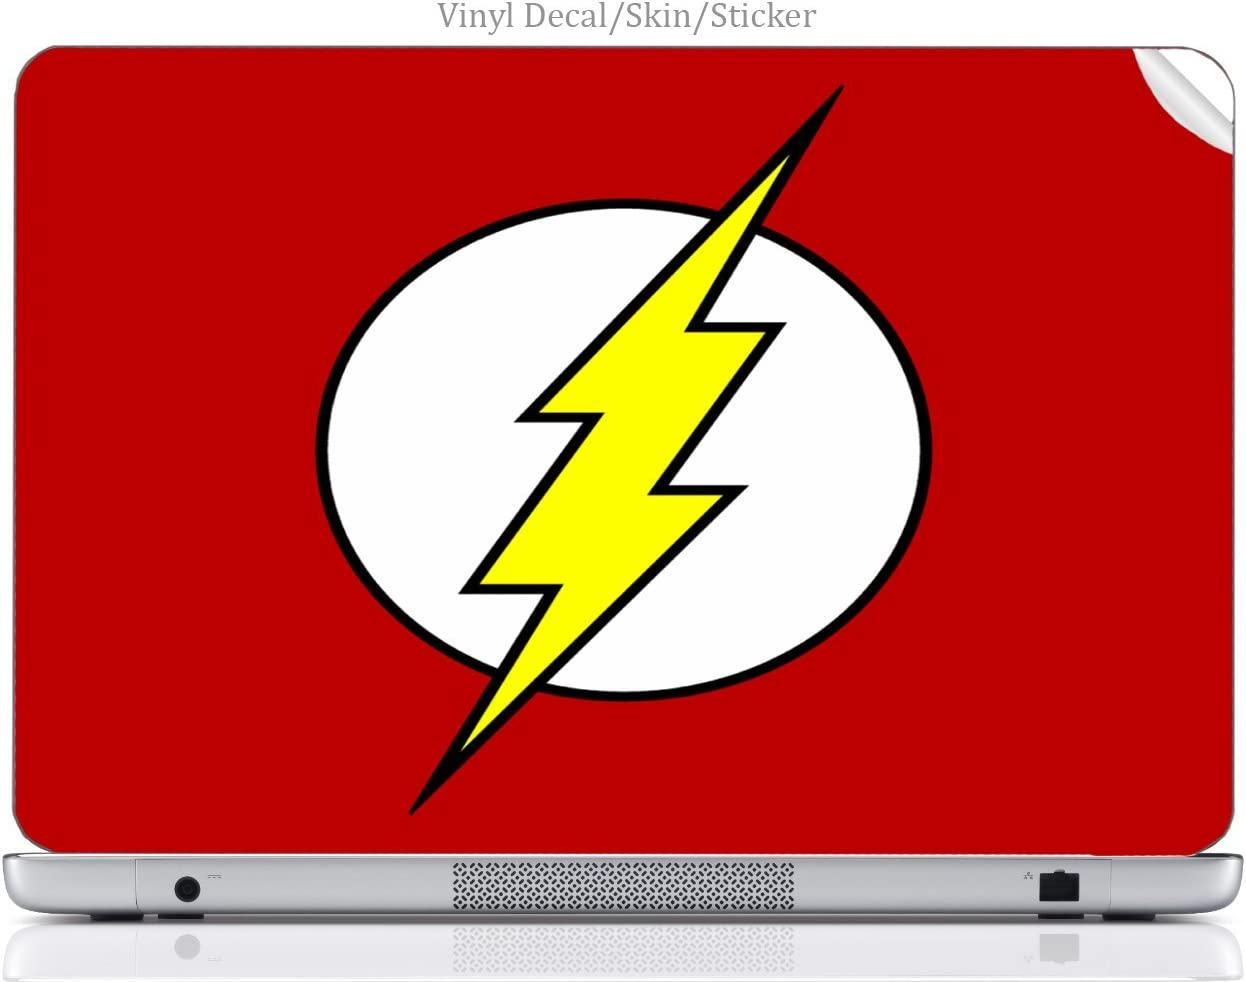 Laptop VINYL DECAL Sticker Skin Print Comic Book Hero fits Vaio Fit 14in